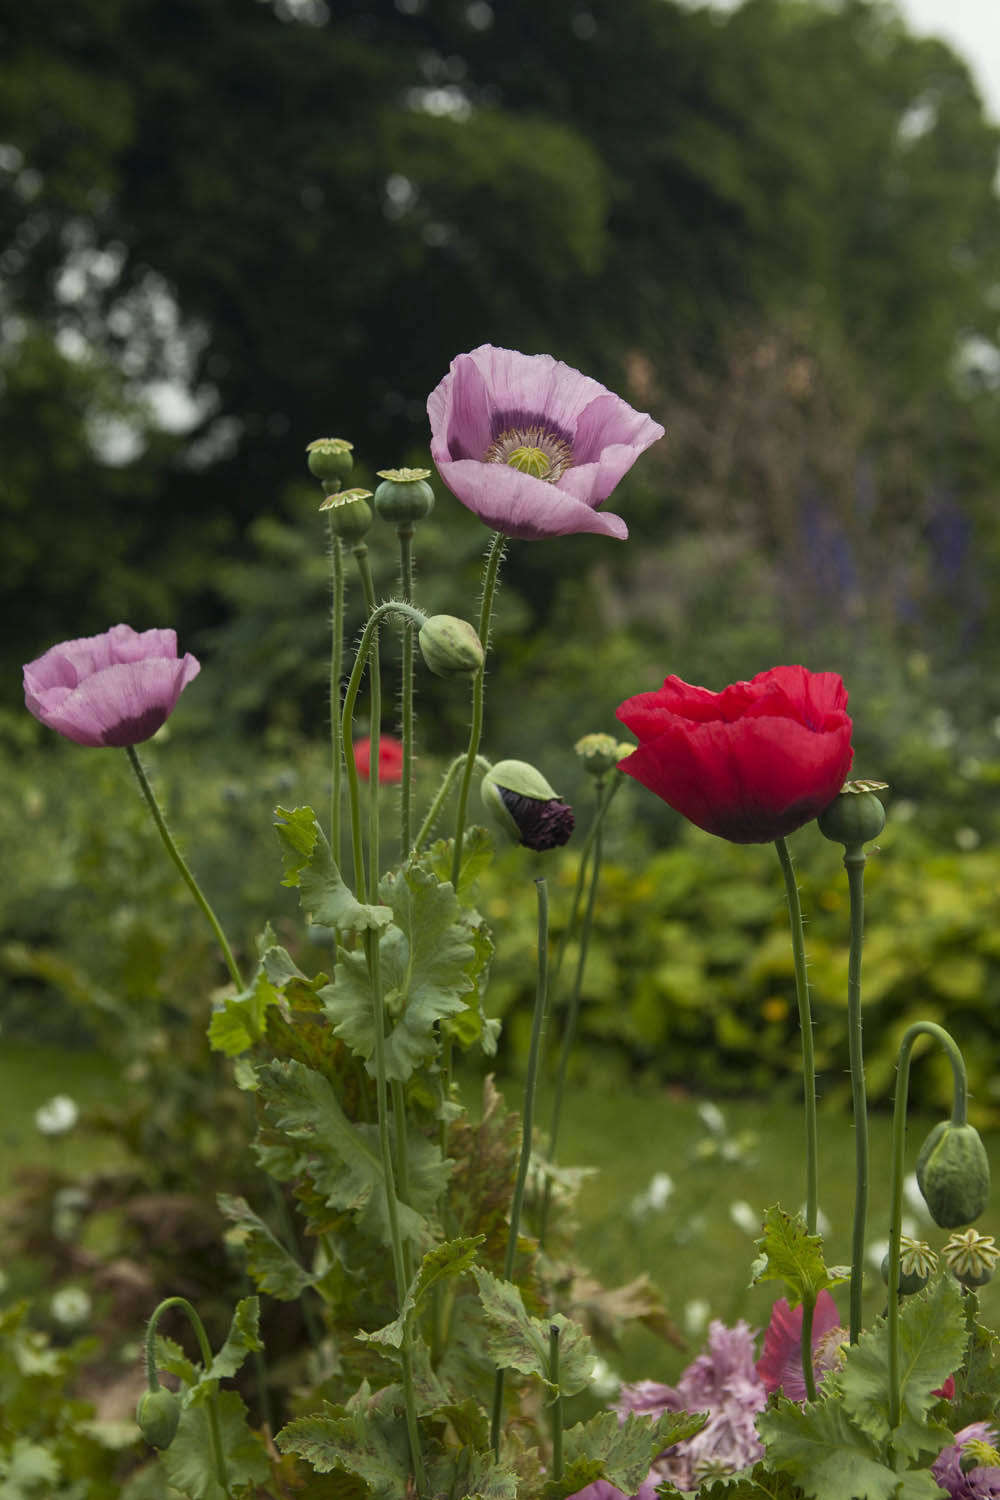 Papaver somniferum 'Pink Dawn' is a named variety which is similar but more predictable than the wild pink types.